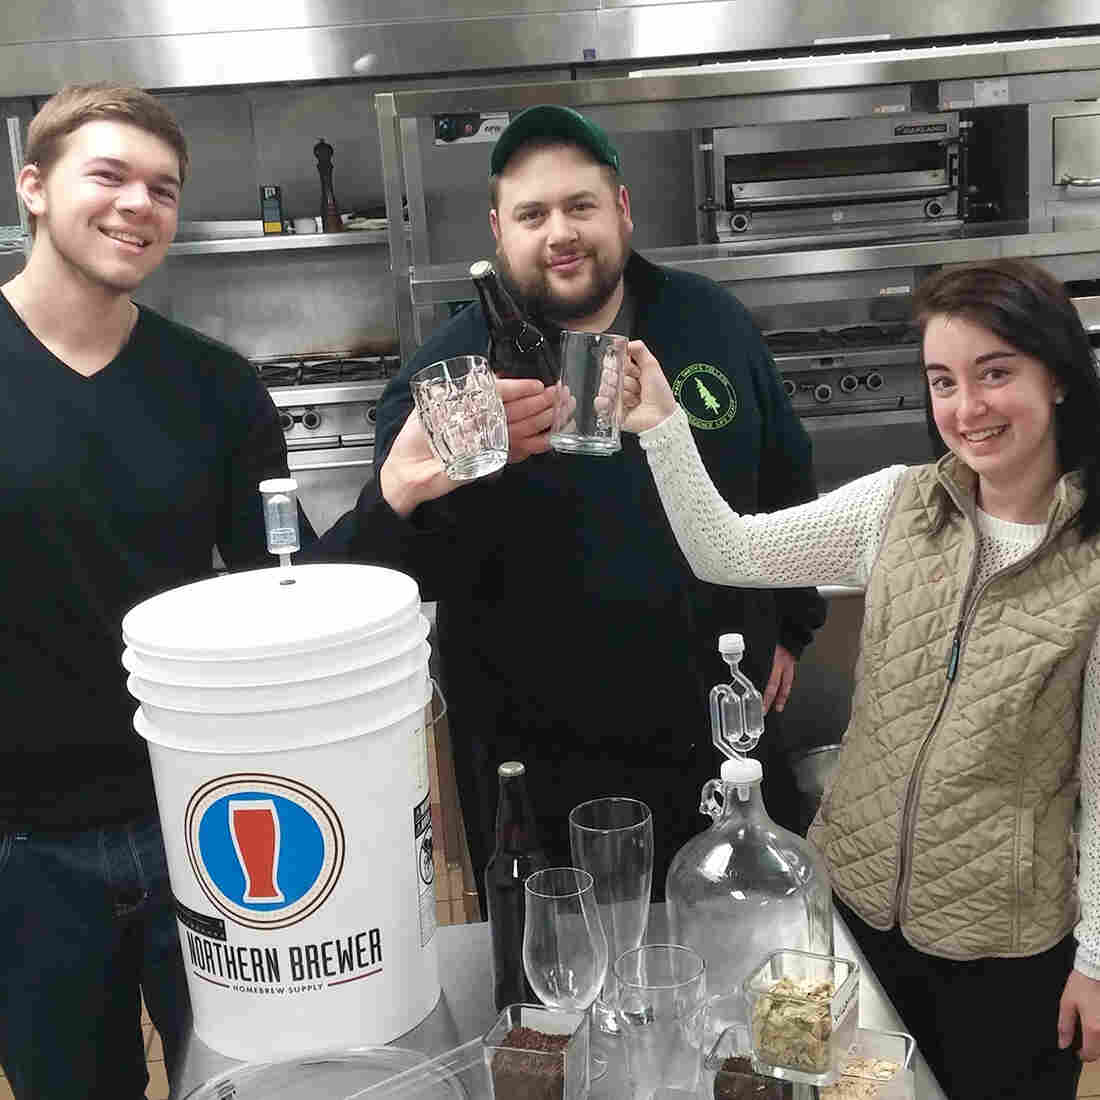 Nicholas Komninos (from left), Anthony Pernisi and Ashlee Doele are among the 25 students who signed up for the first suds-specific class in Paul Smith's College's new minor in craft beers. It's a three-credit course in brewing, replete with labs and lectures.